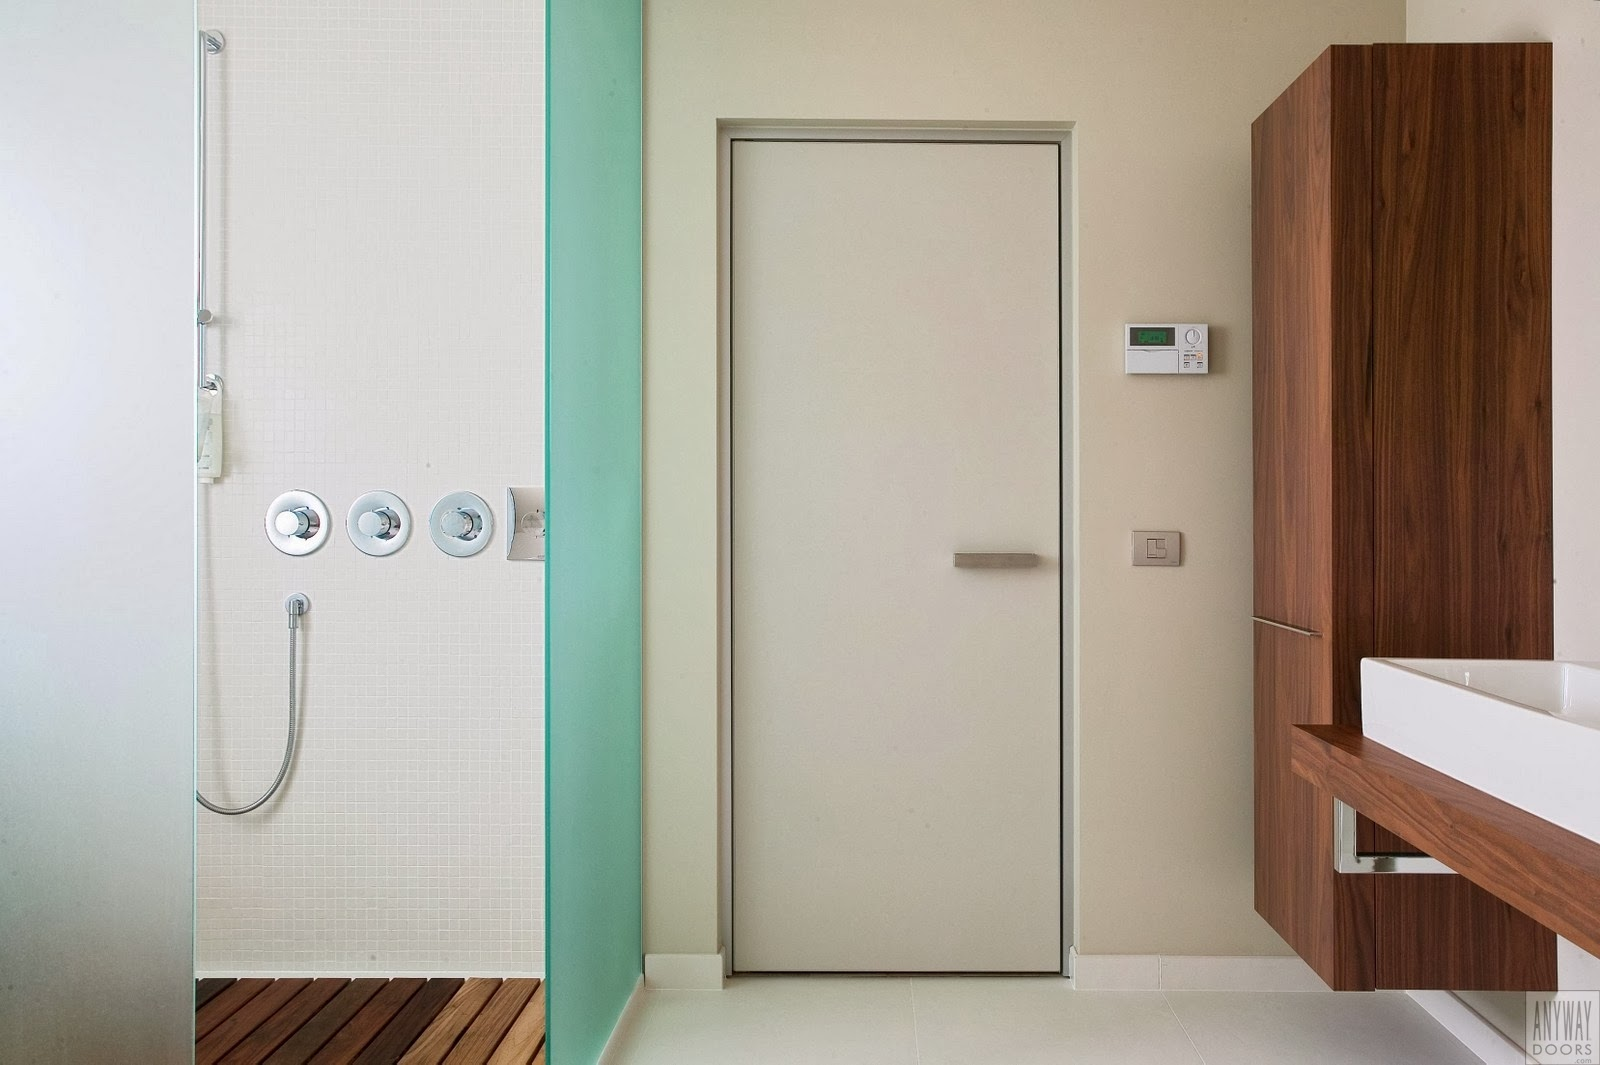 Portes int rieures sur mesure de anyway doors for Portes interieures design